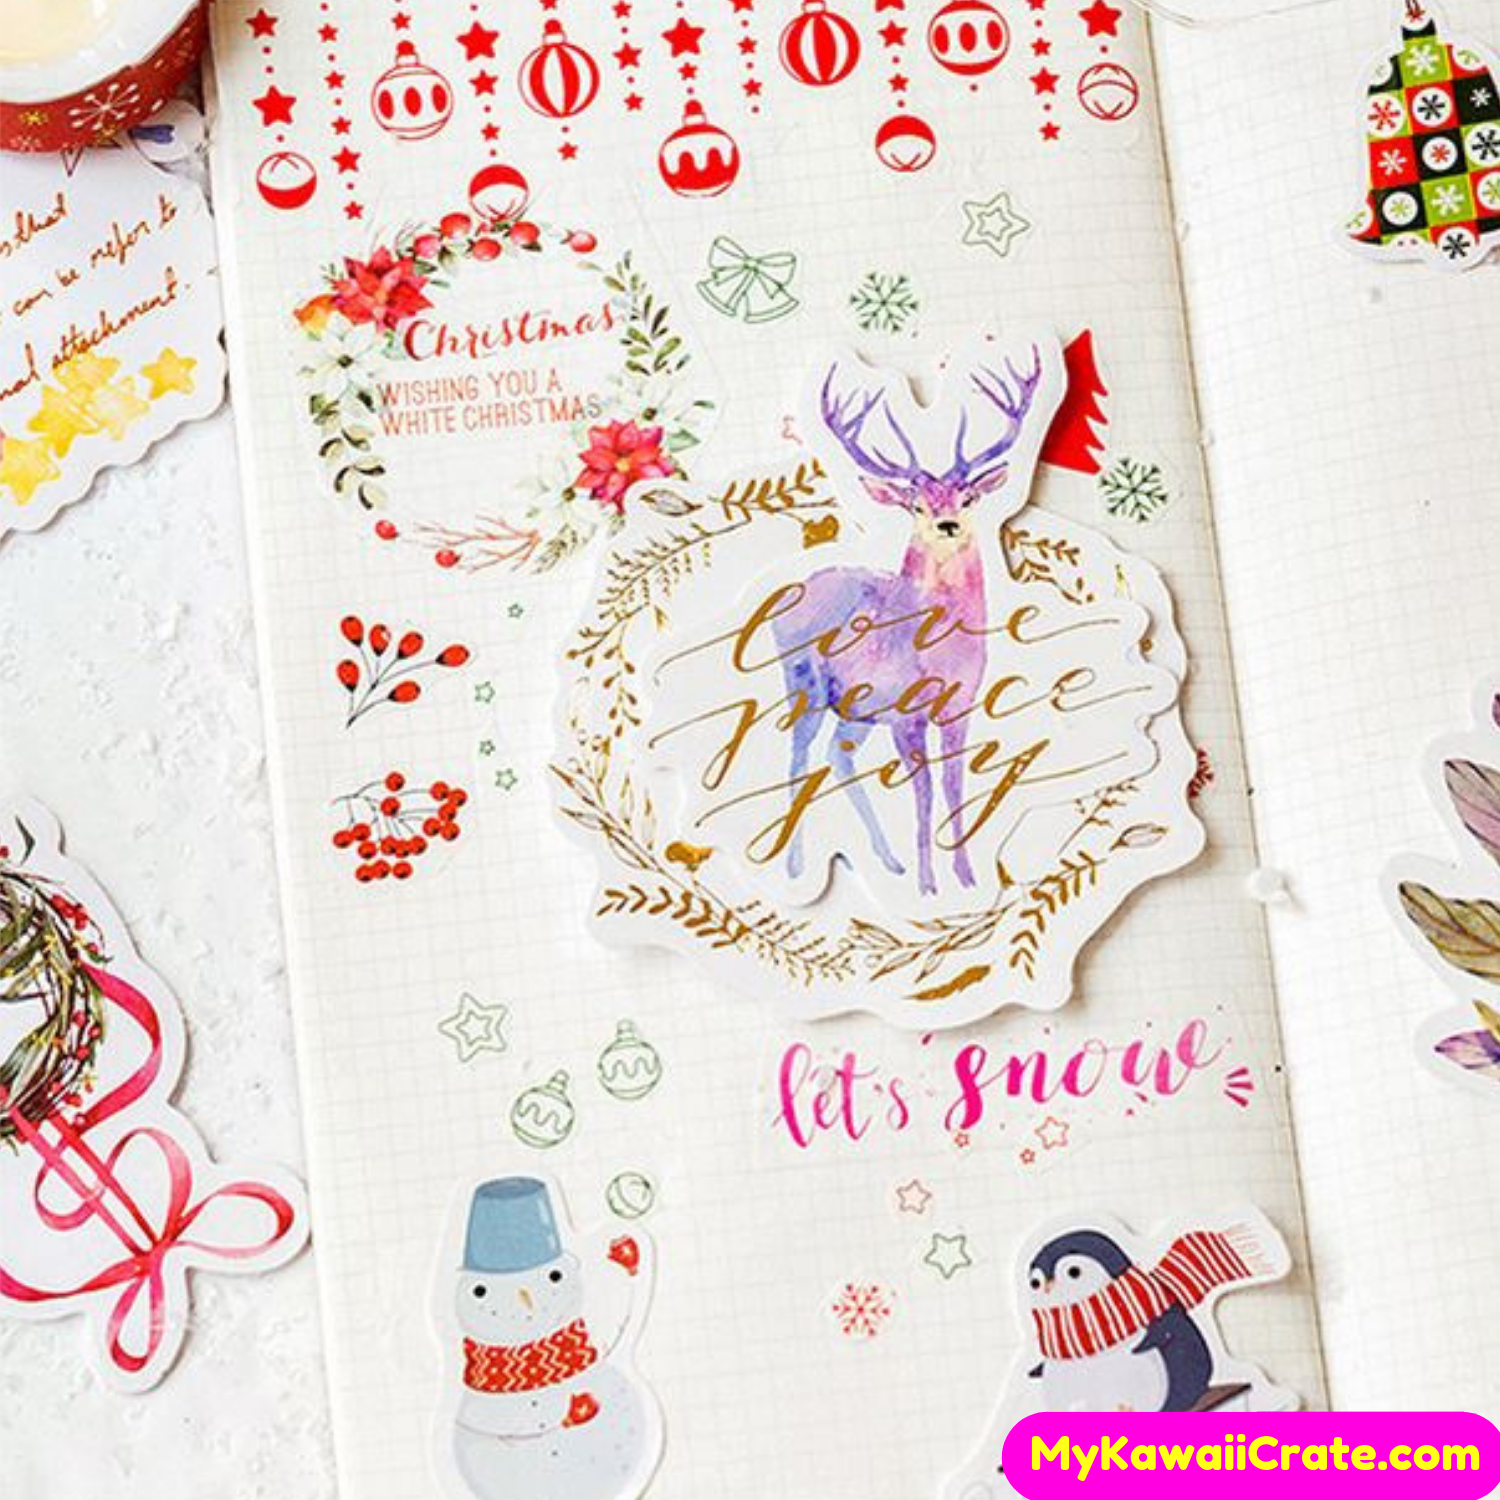 Decorate Your Planner Journal And Paper Crafts With These Fun Christmas Stickers F0 9f 8e 84www